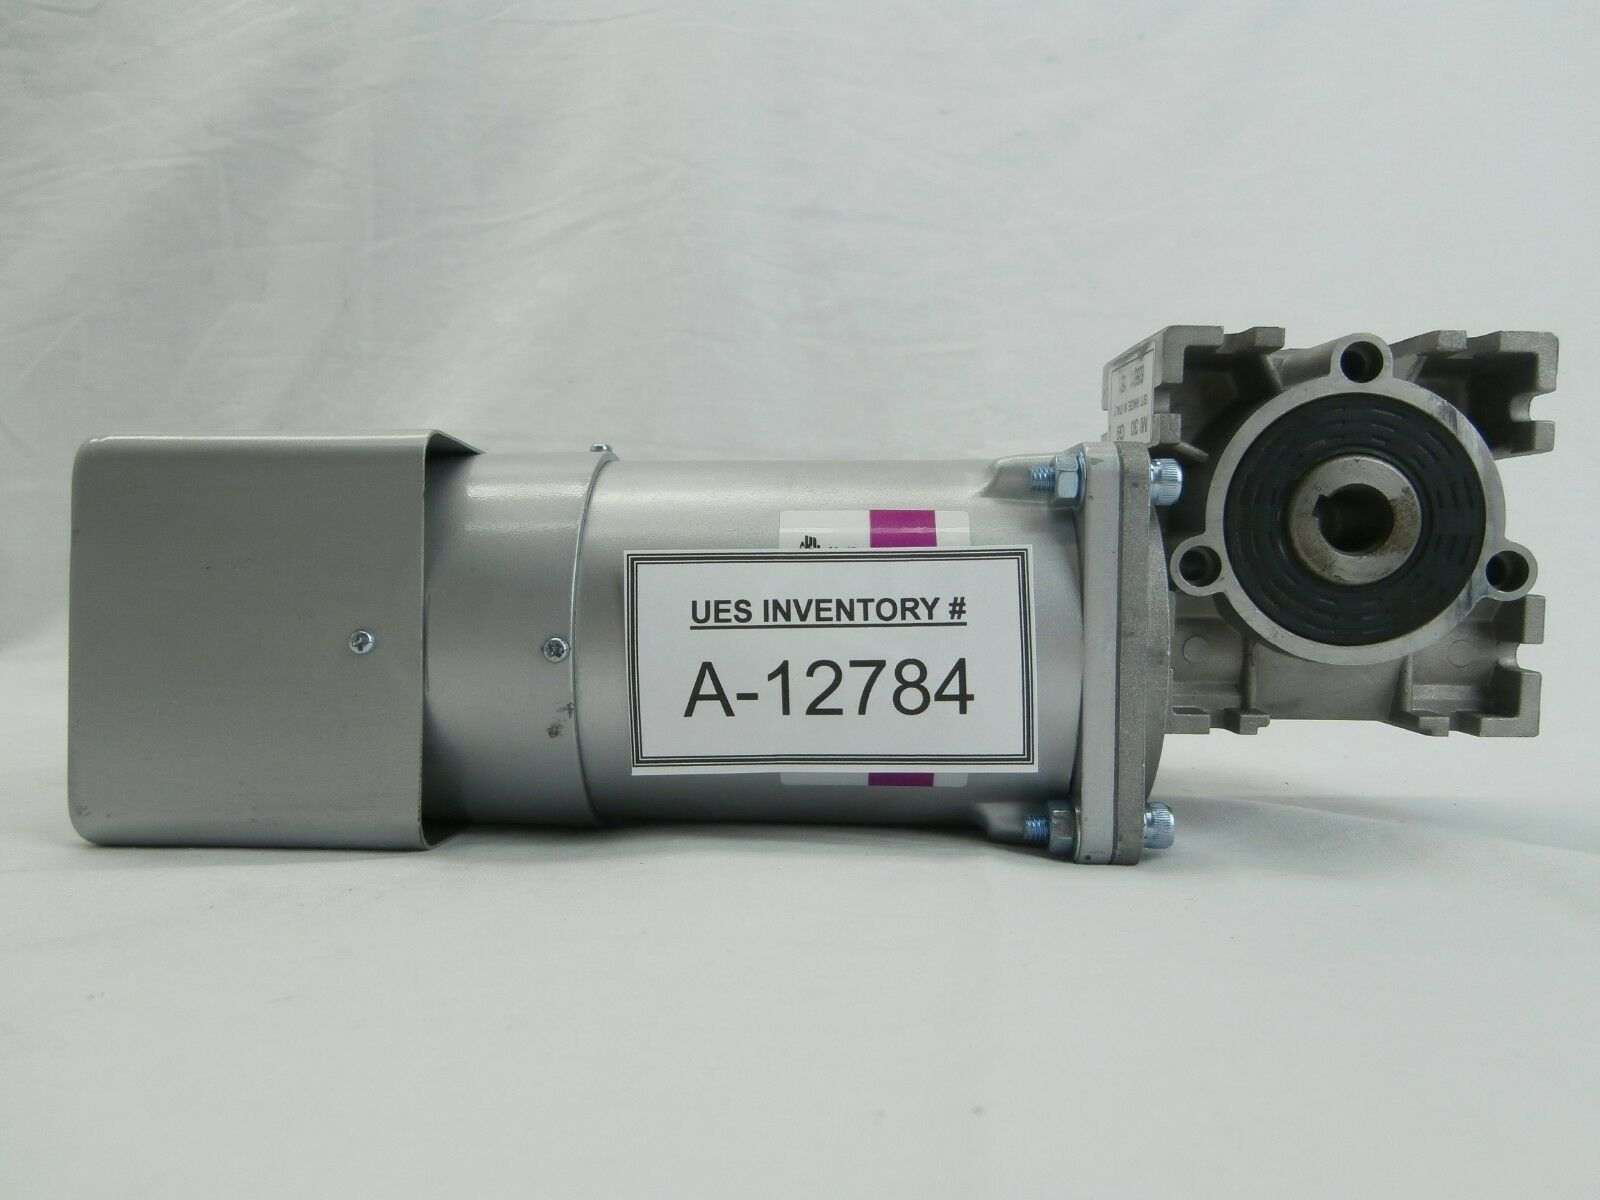 SPG S9R90MB-ES12 E.S Motor with Siti Gear Head MI 30 G9 Used Working